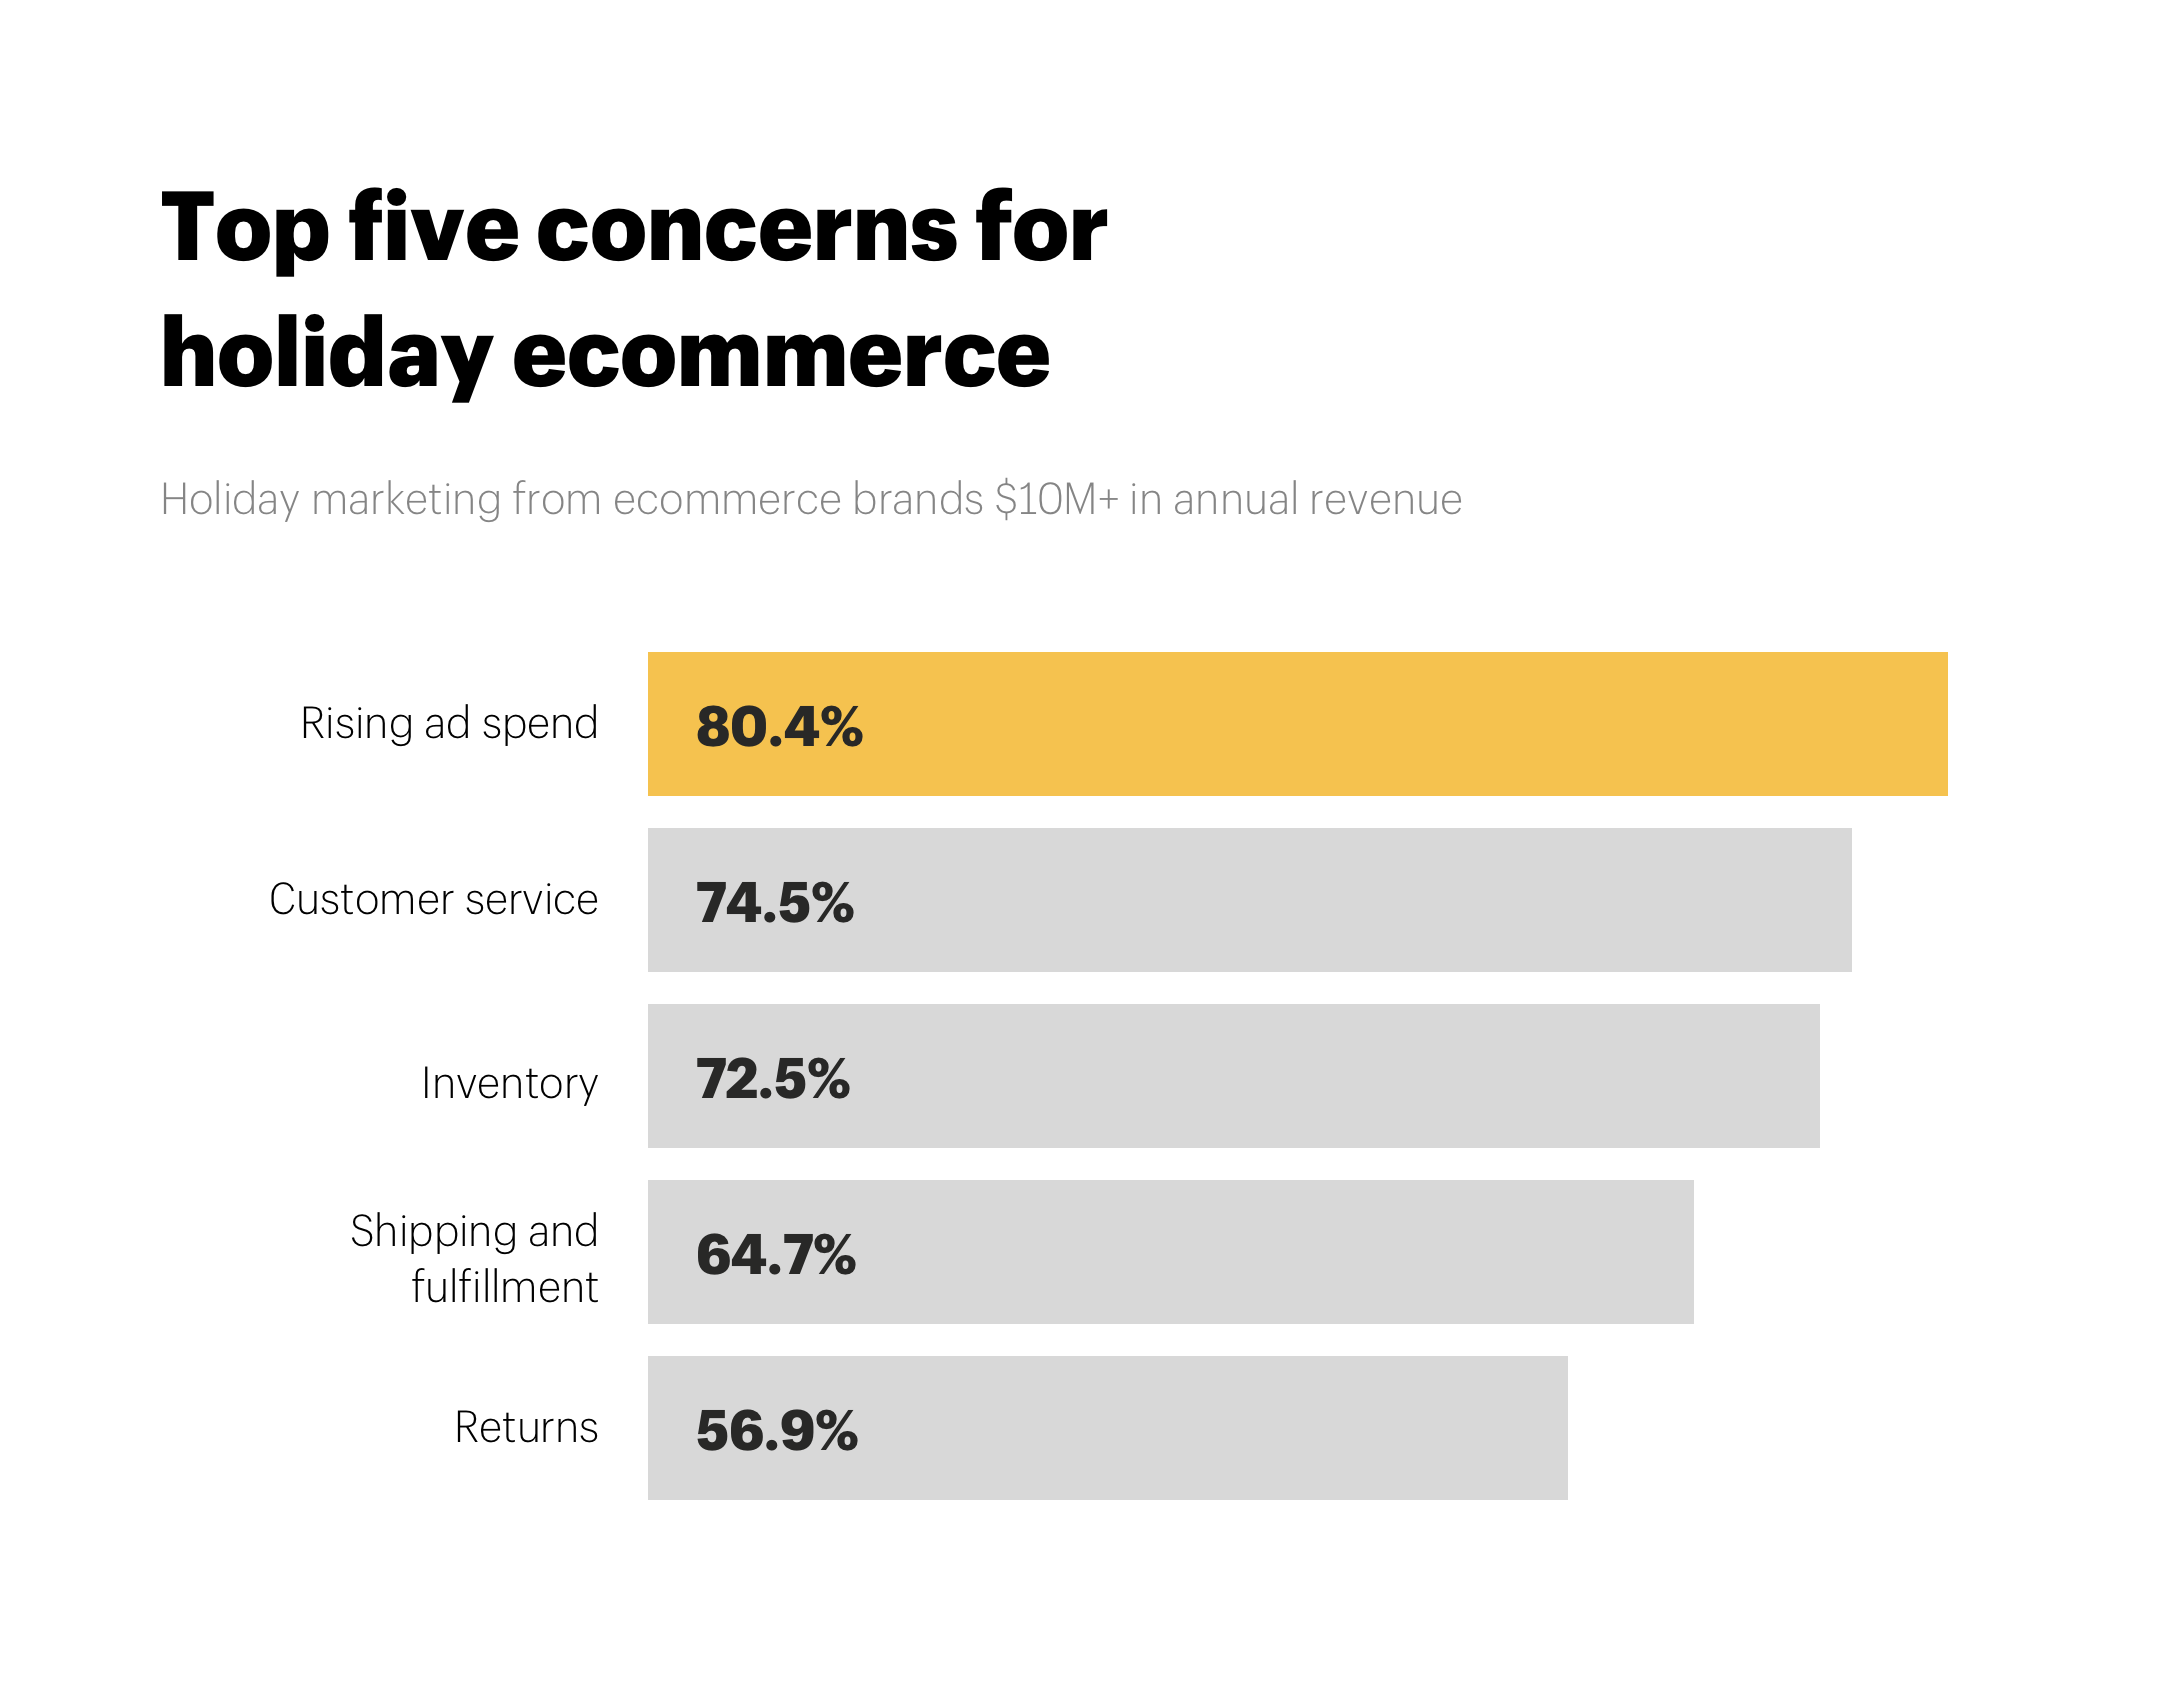 Holiday marketing ecommerce top five concerns for holiday ecommerce